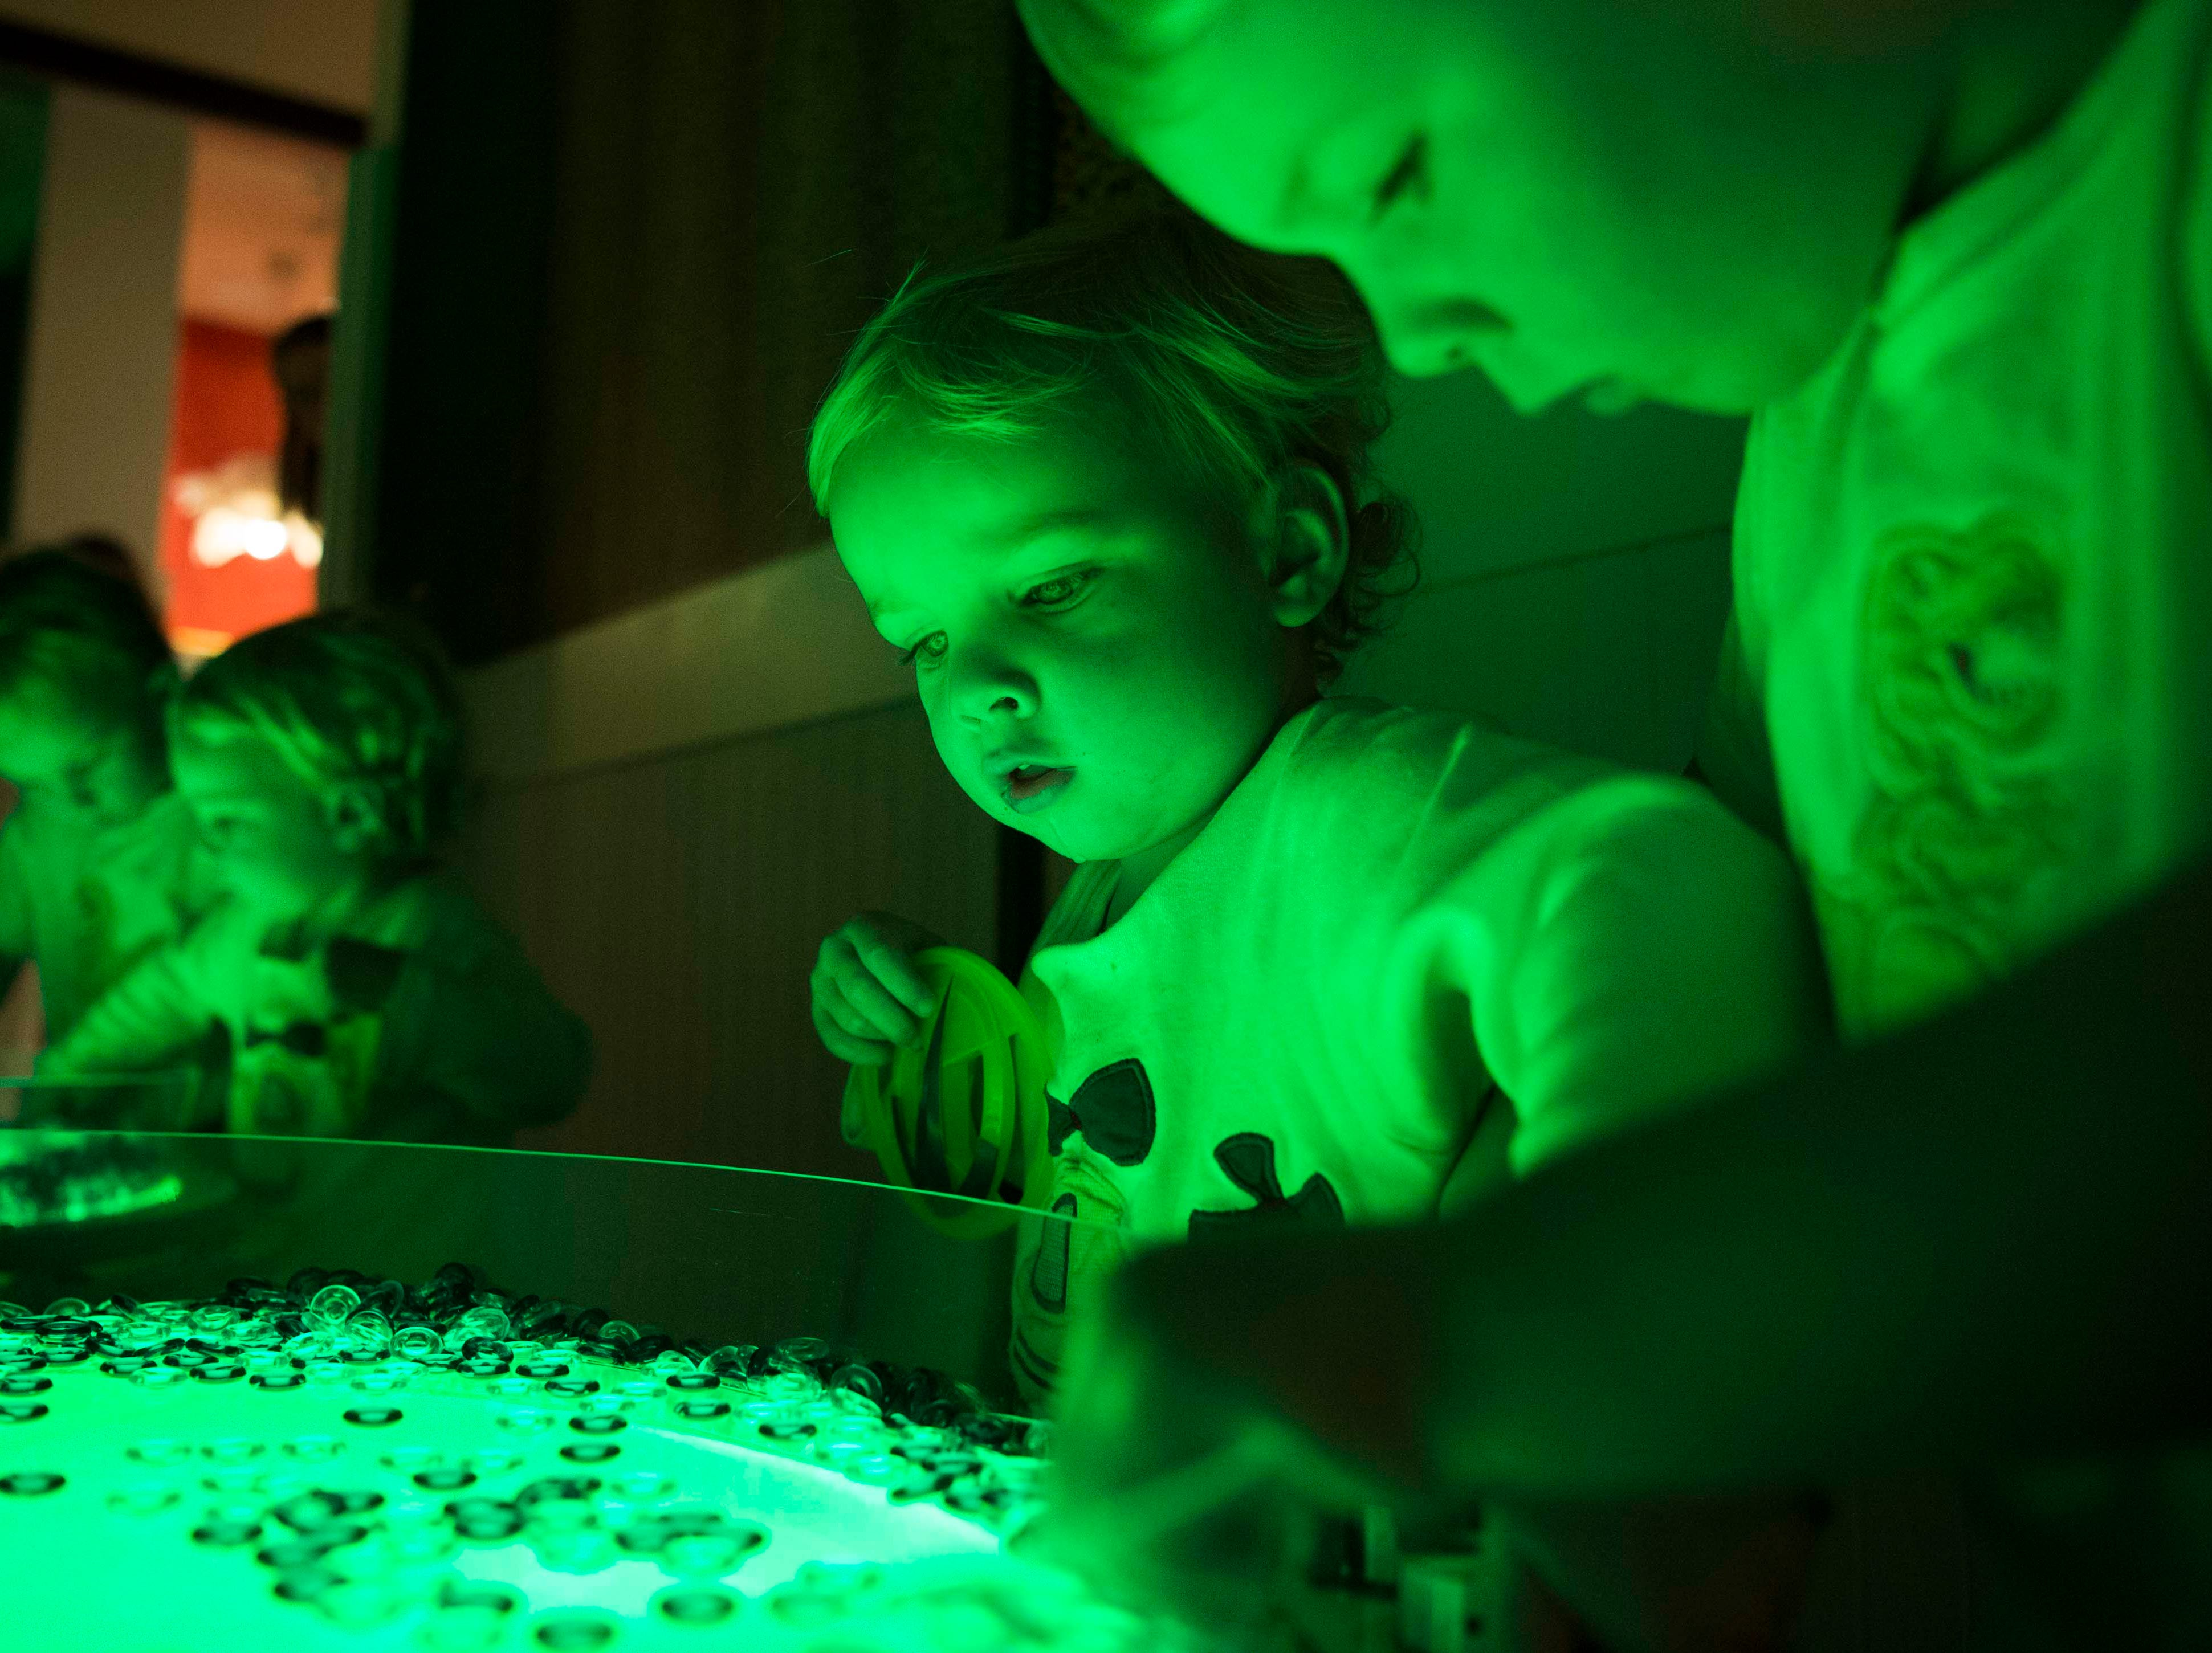 Brothers John Reed, 2, at left, and Henry, 4, play at the new Muse at the Mall at West Town Mall in Knoxville Thursday, April 11, 2019. The Muse offers STEAM (science, technology, engineering, art, math) based play for Knoxville families, and will open to the public on Saturday April 13.